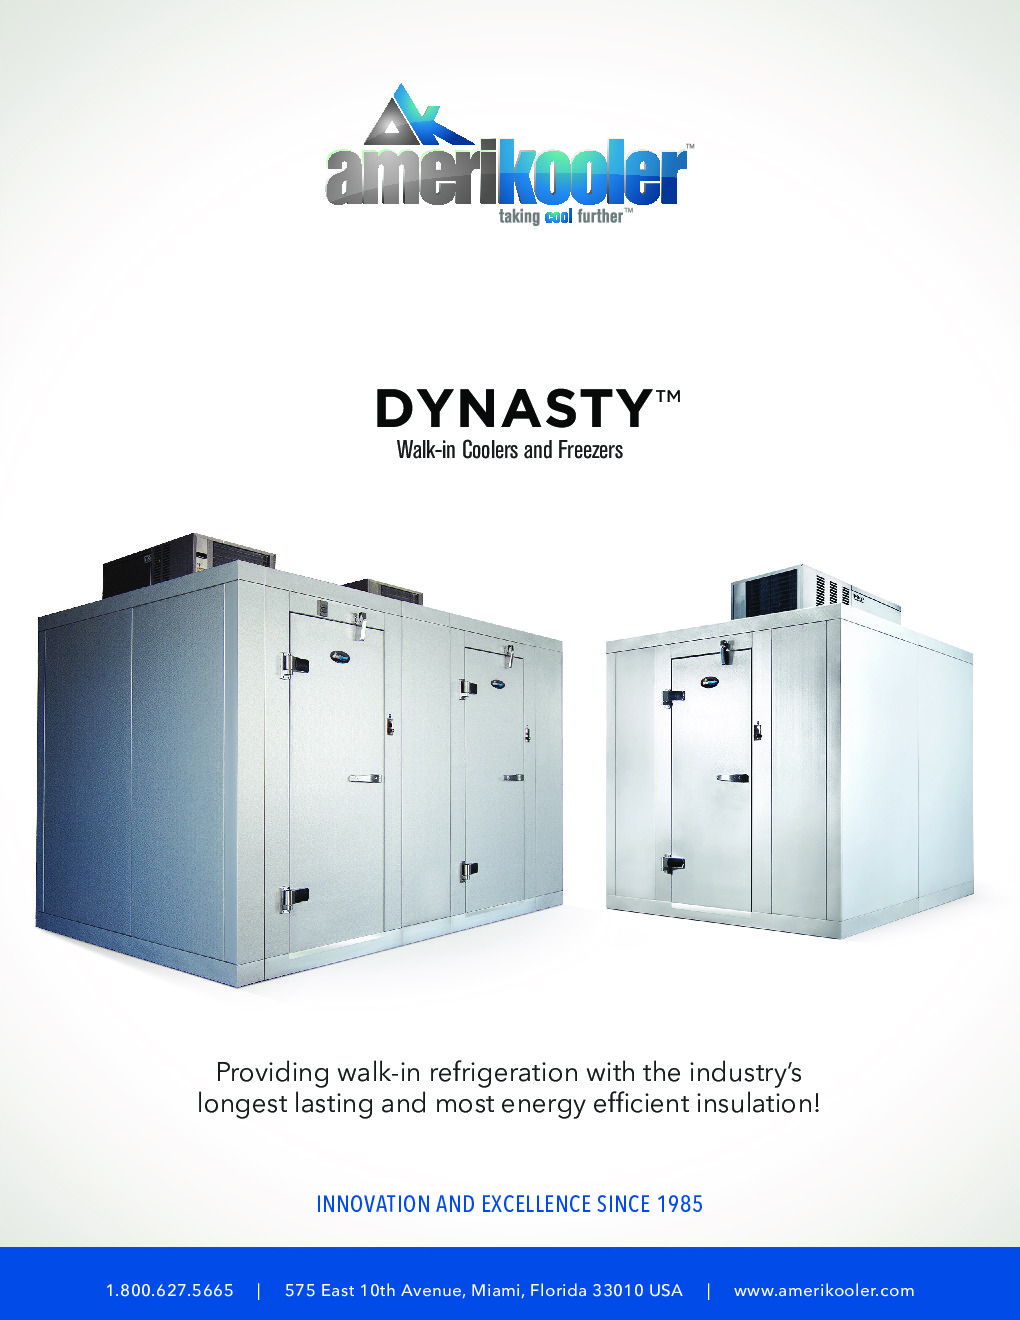 AmeriKooler DW091877N-5/13-RM 9' X 18' Walk-In Cooler, 13' L Cooler without Floor and 5' L Freezer, Remote